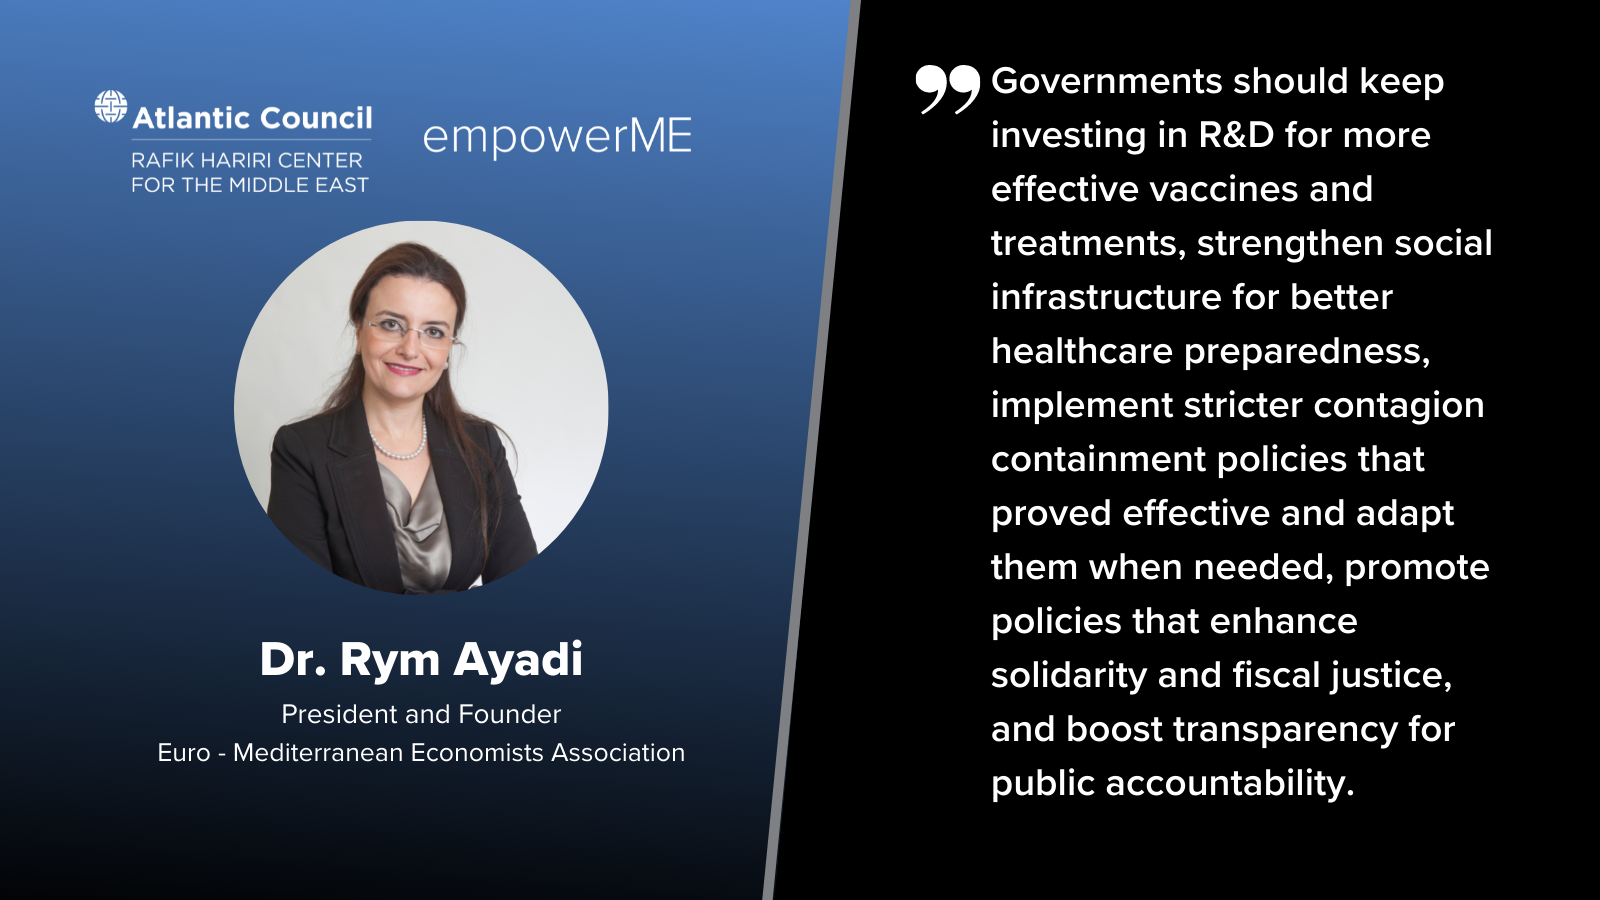 Prof Ayadi featured at the empowerME newsletter published by the Atlantic Council's Rafik Hariri Center for the Middle East